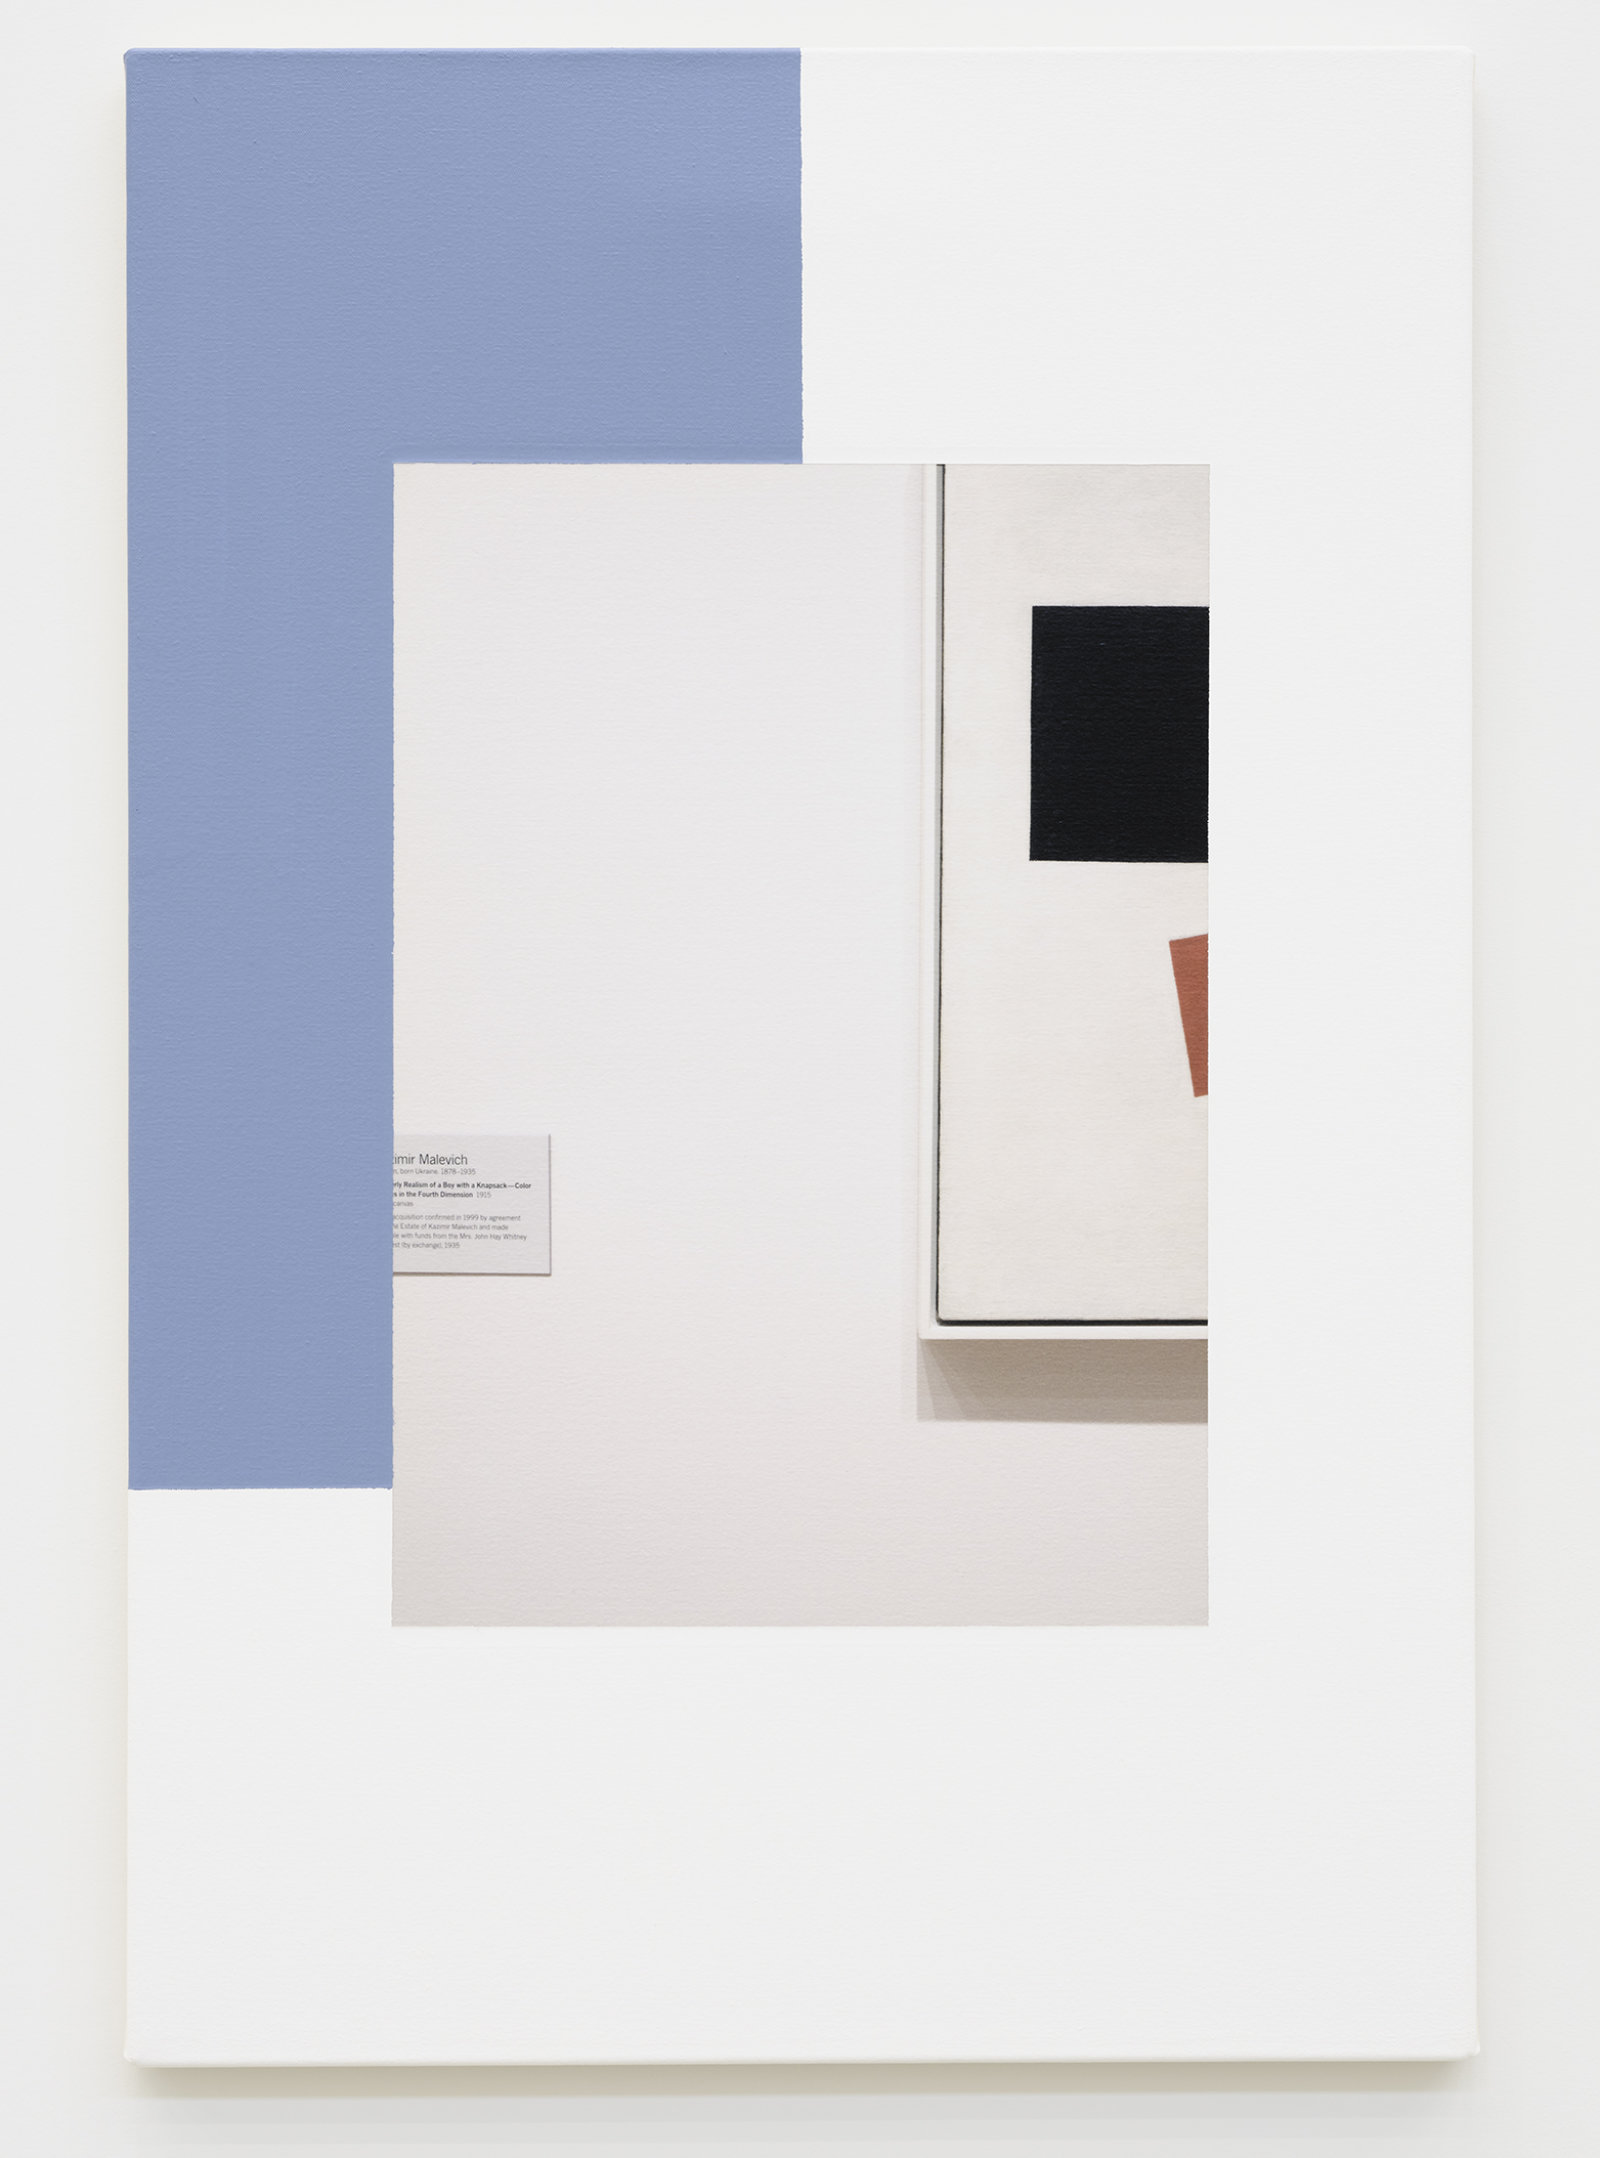 Ian Wallace, Abstract Composition (with Malevich), 2011, photolaminate with acrylic on canvas, 36 x 24 in. (91 x 61 cm) by Ian Wallace